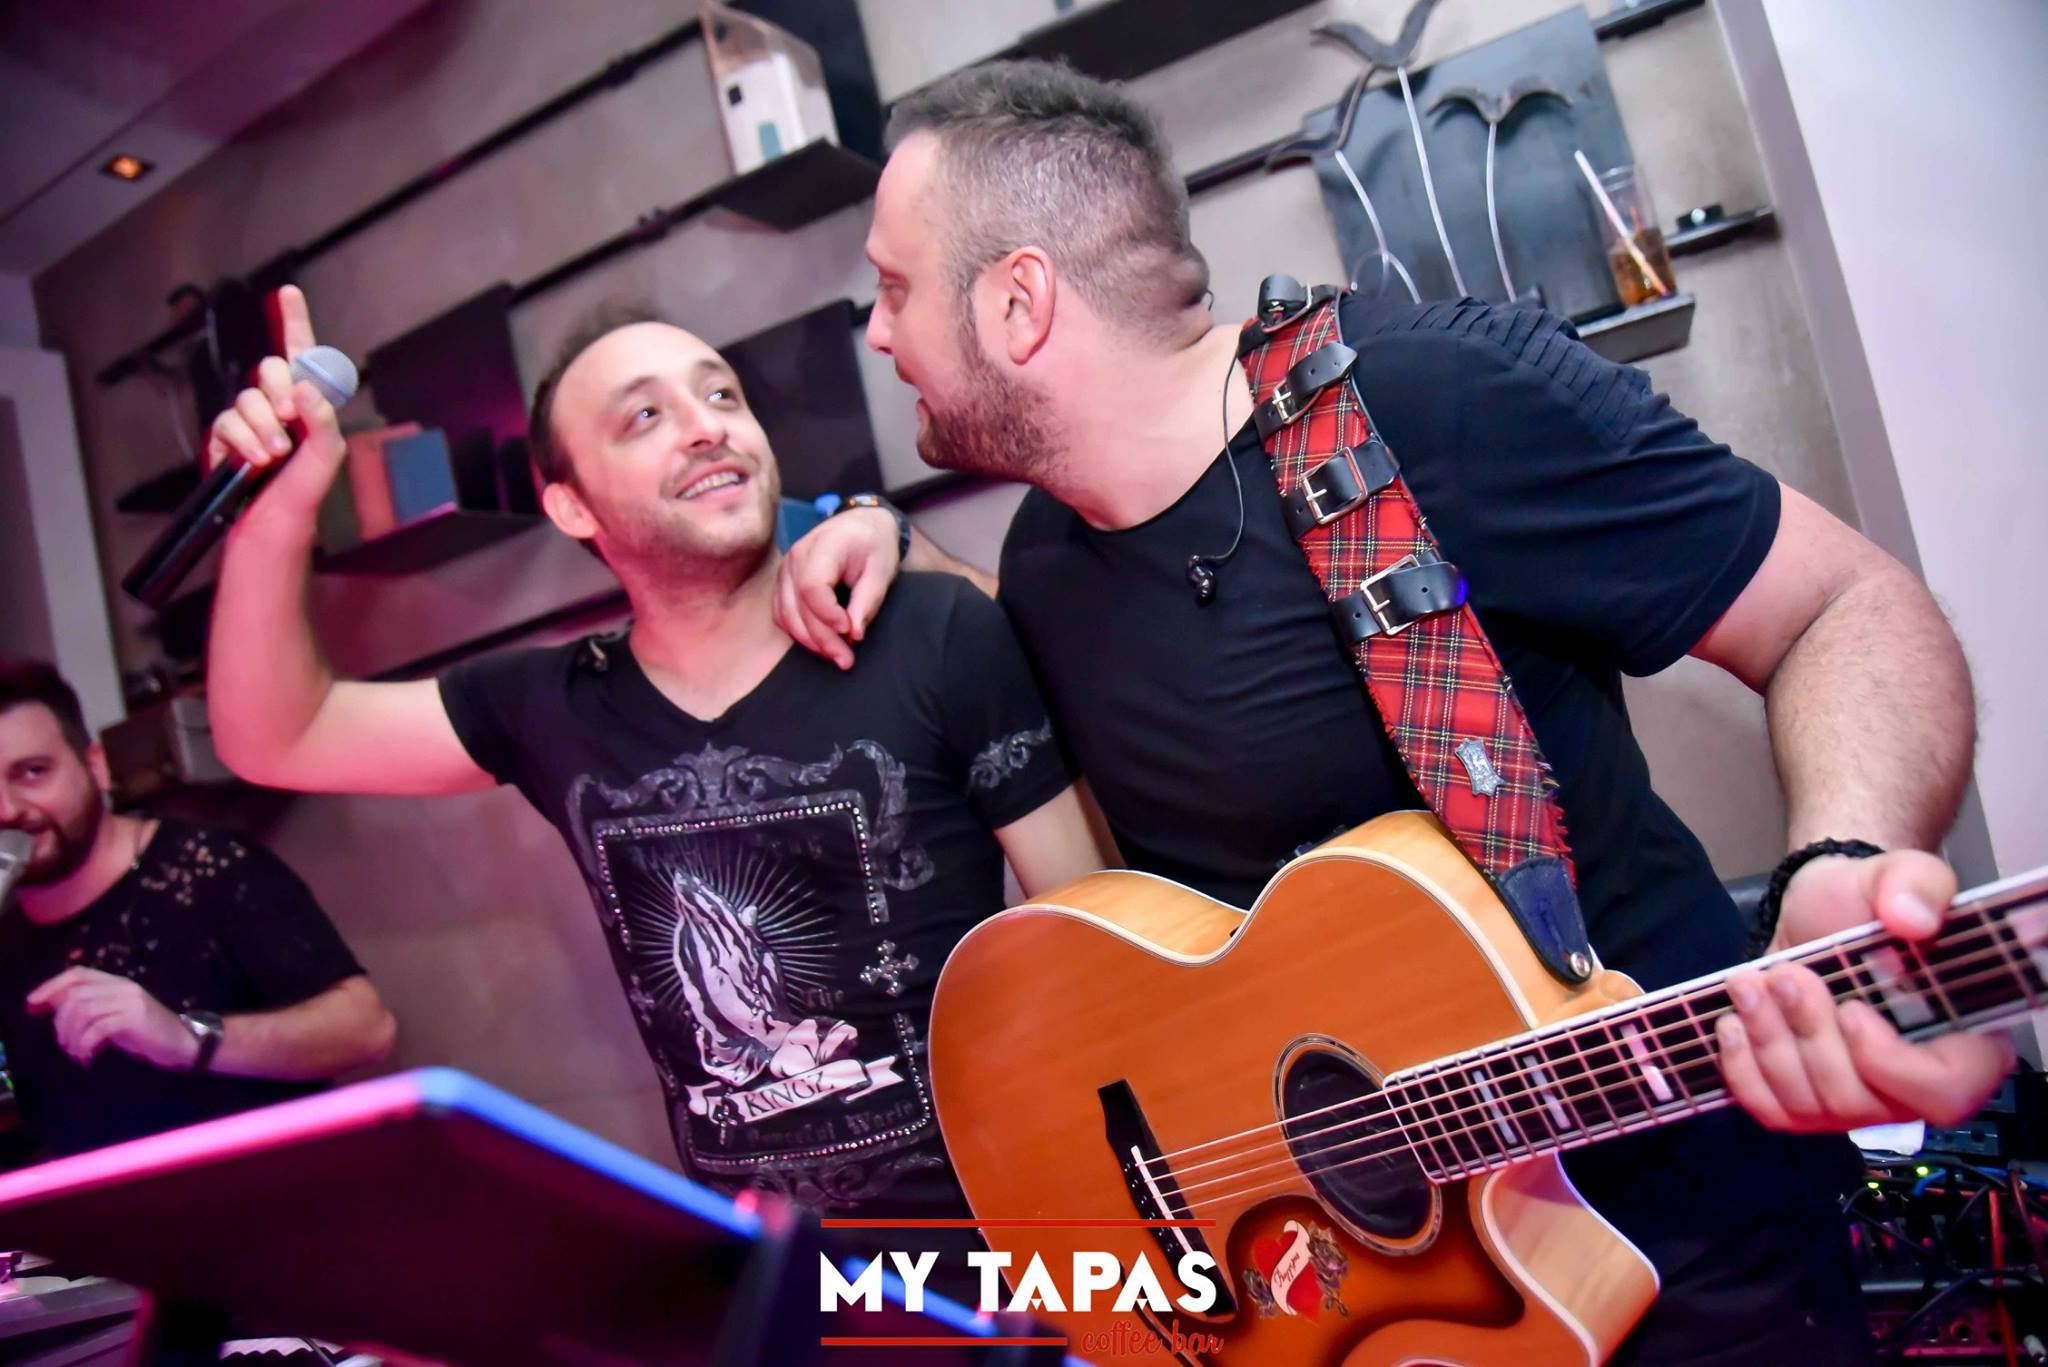 36. 22550506 1576370455716495 1043706722526024056 o 1 - My Live Tuesdays στο MY Tapas Coffee bar | Τρίτη 17.10 Part 1/2